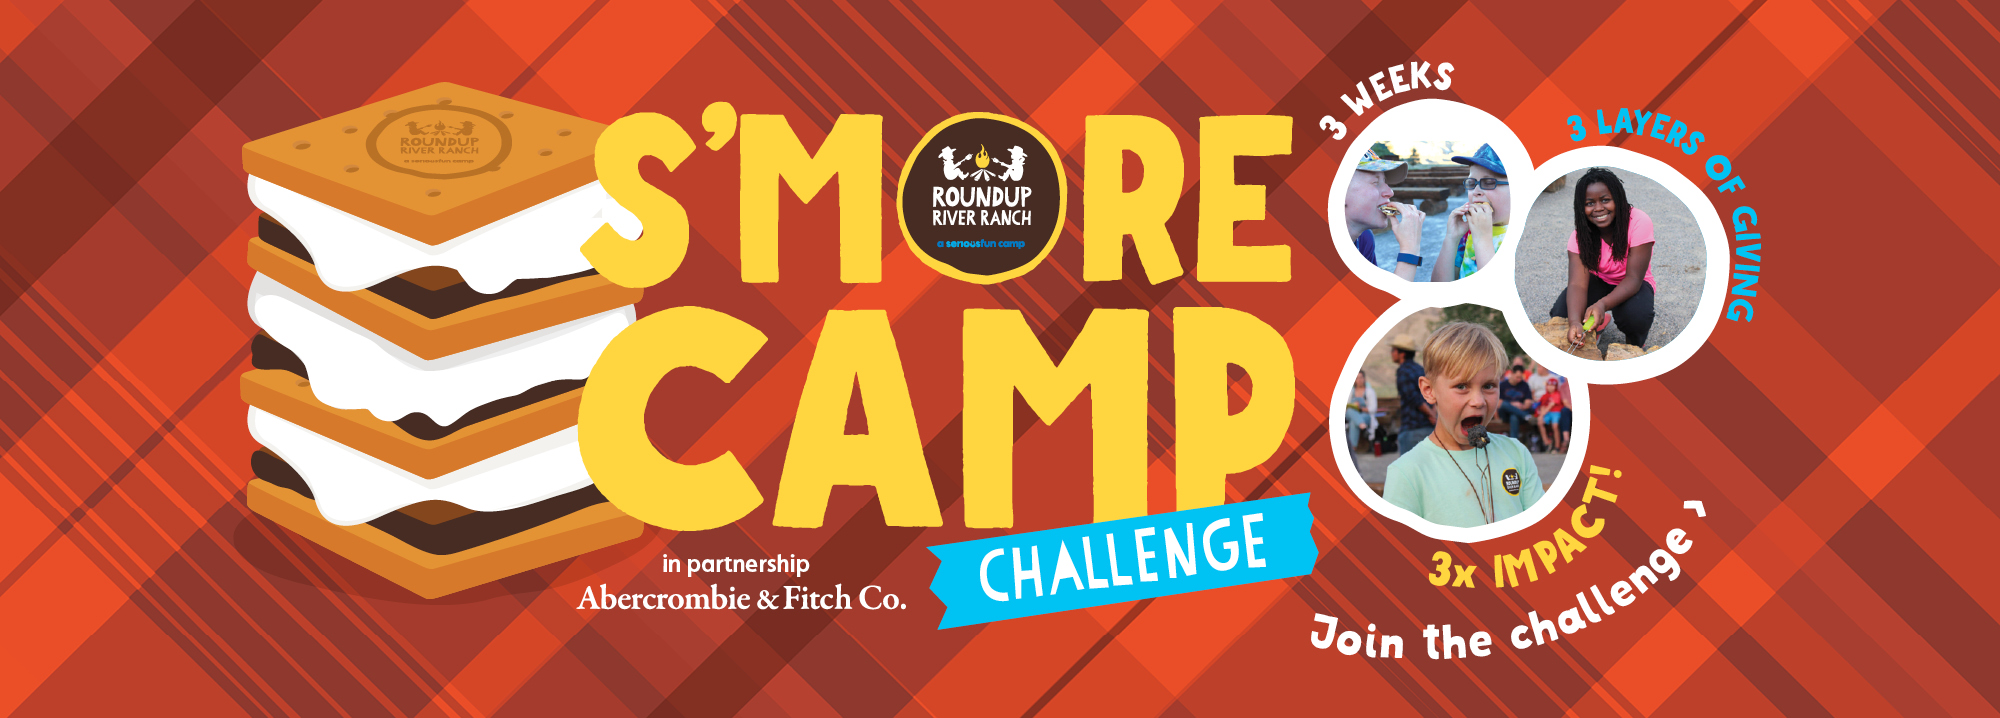 S'MORE CAMP Challenge. in partnership with Abercrombie & Fitch Co. Join Today. 3 Weeks, 3 Layers of Giving, 3X Match